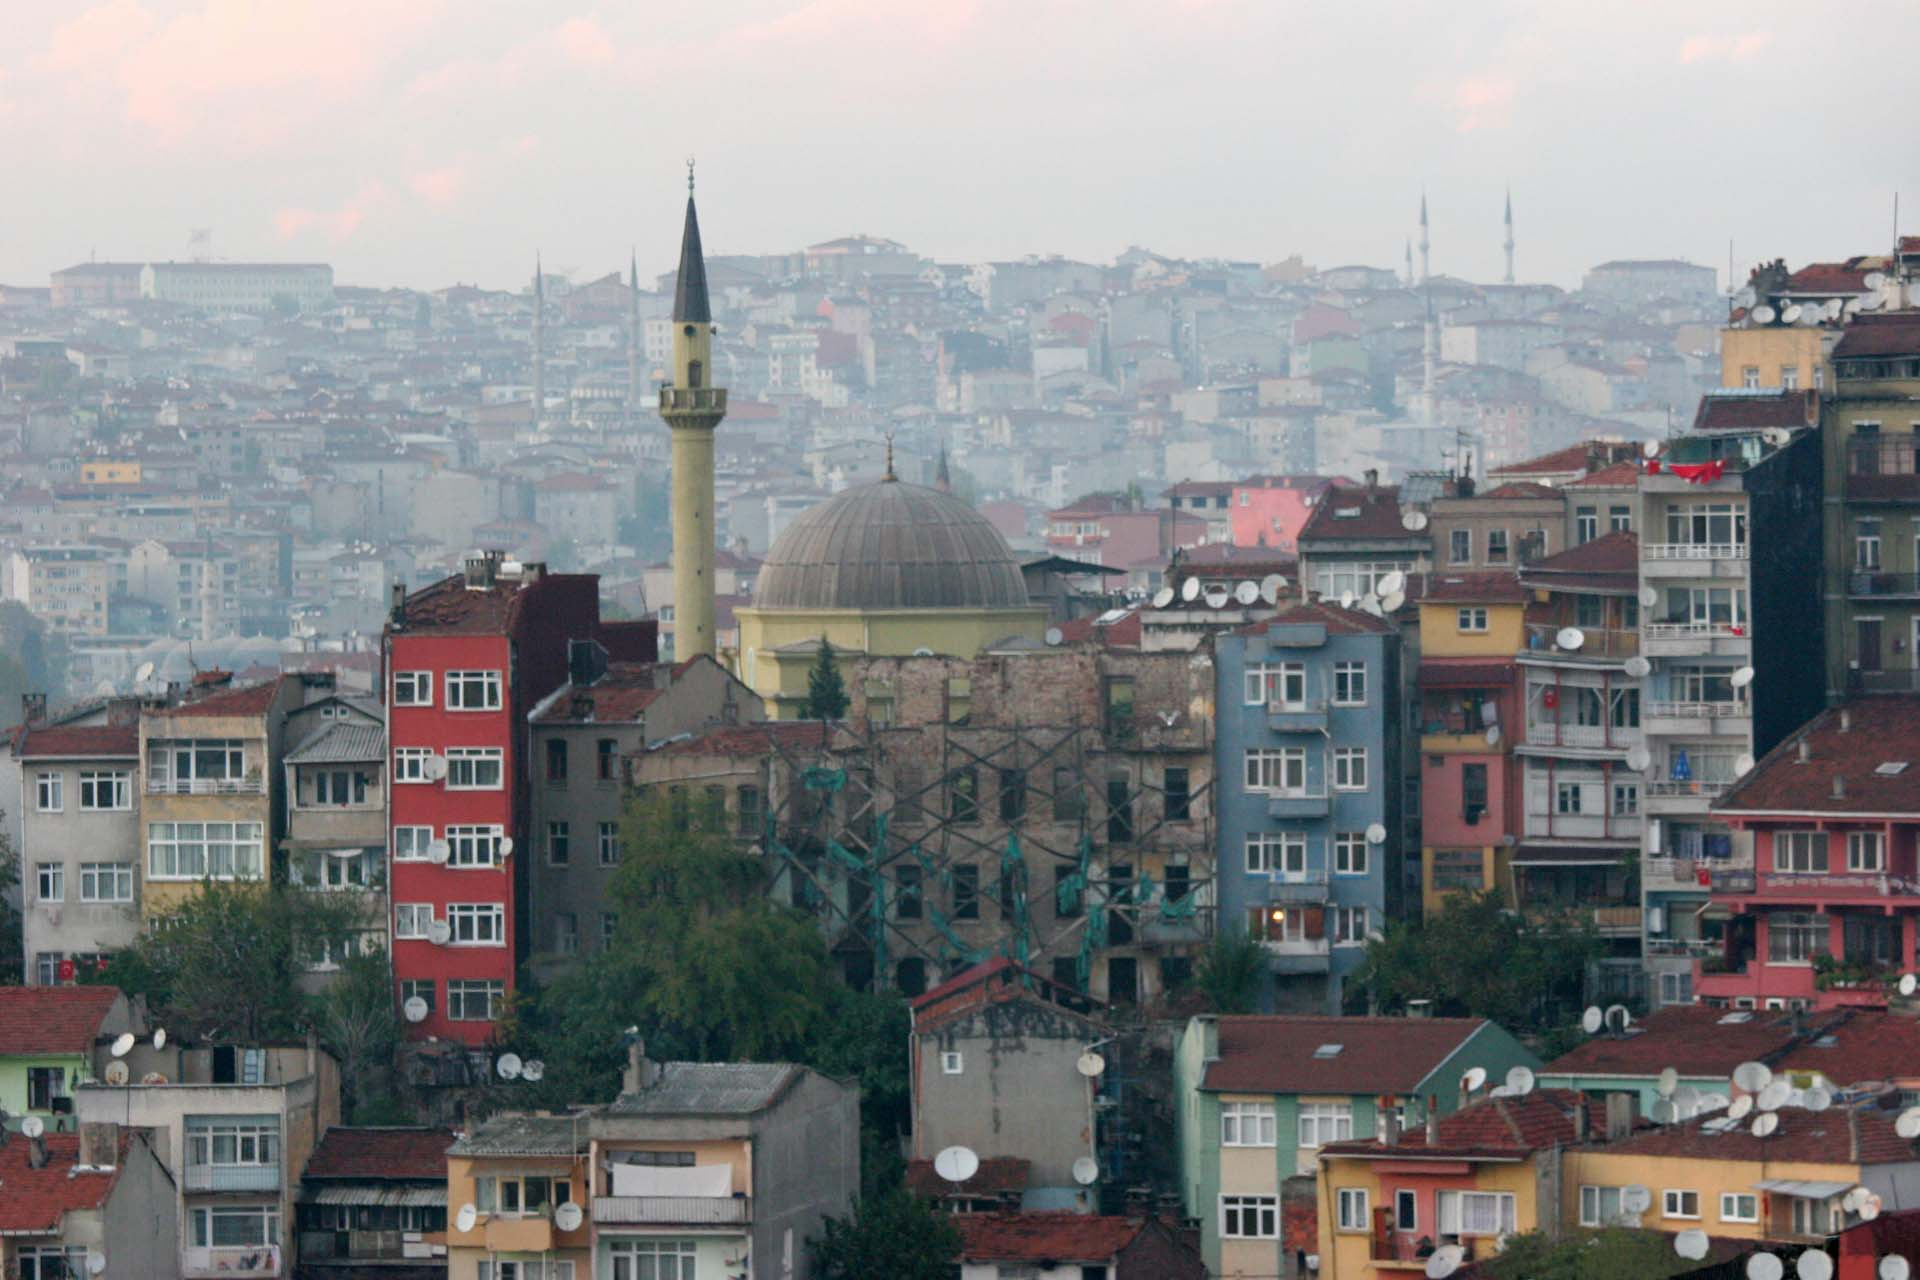 Istanbul, endless sea of houses